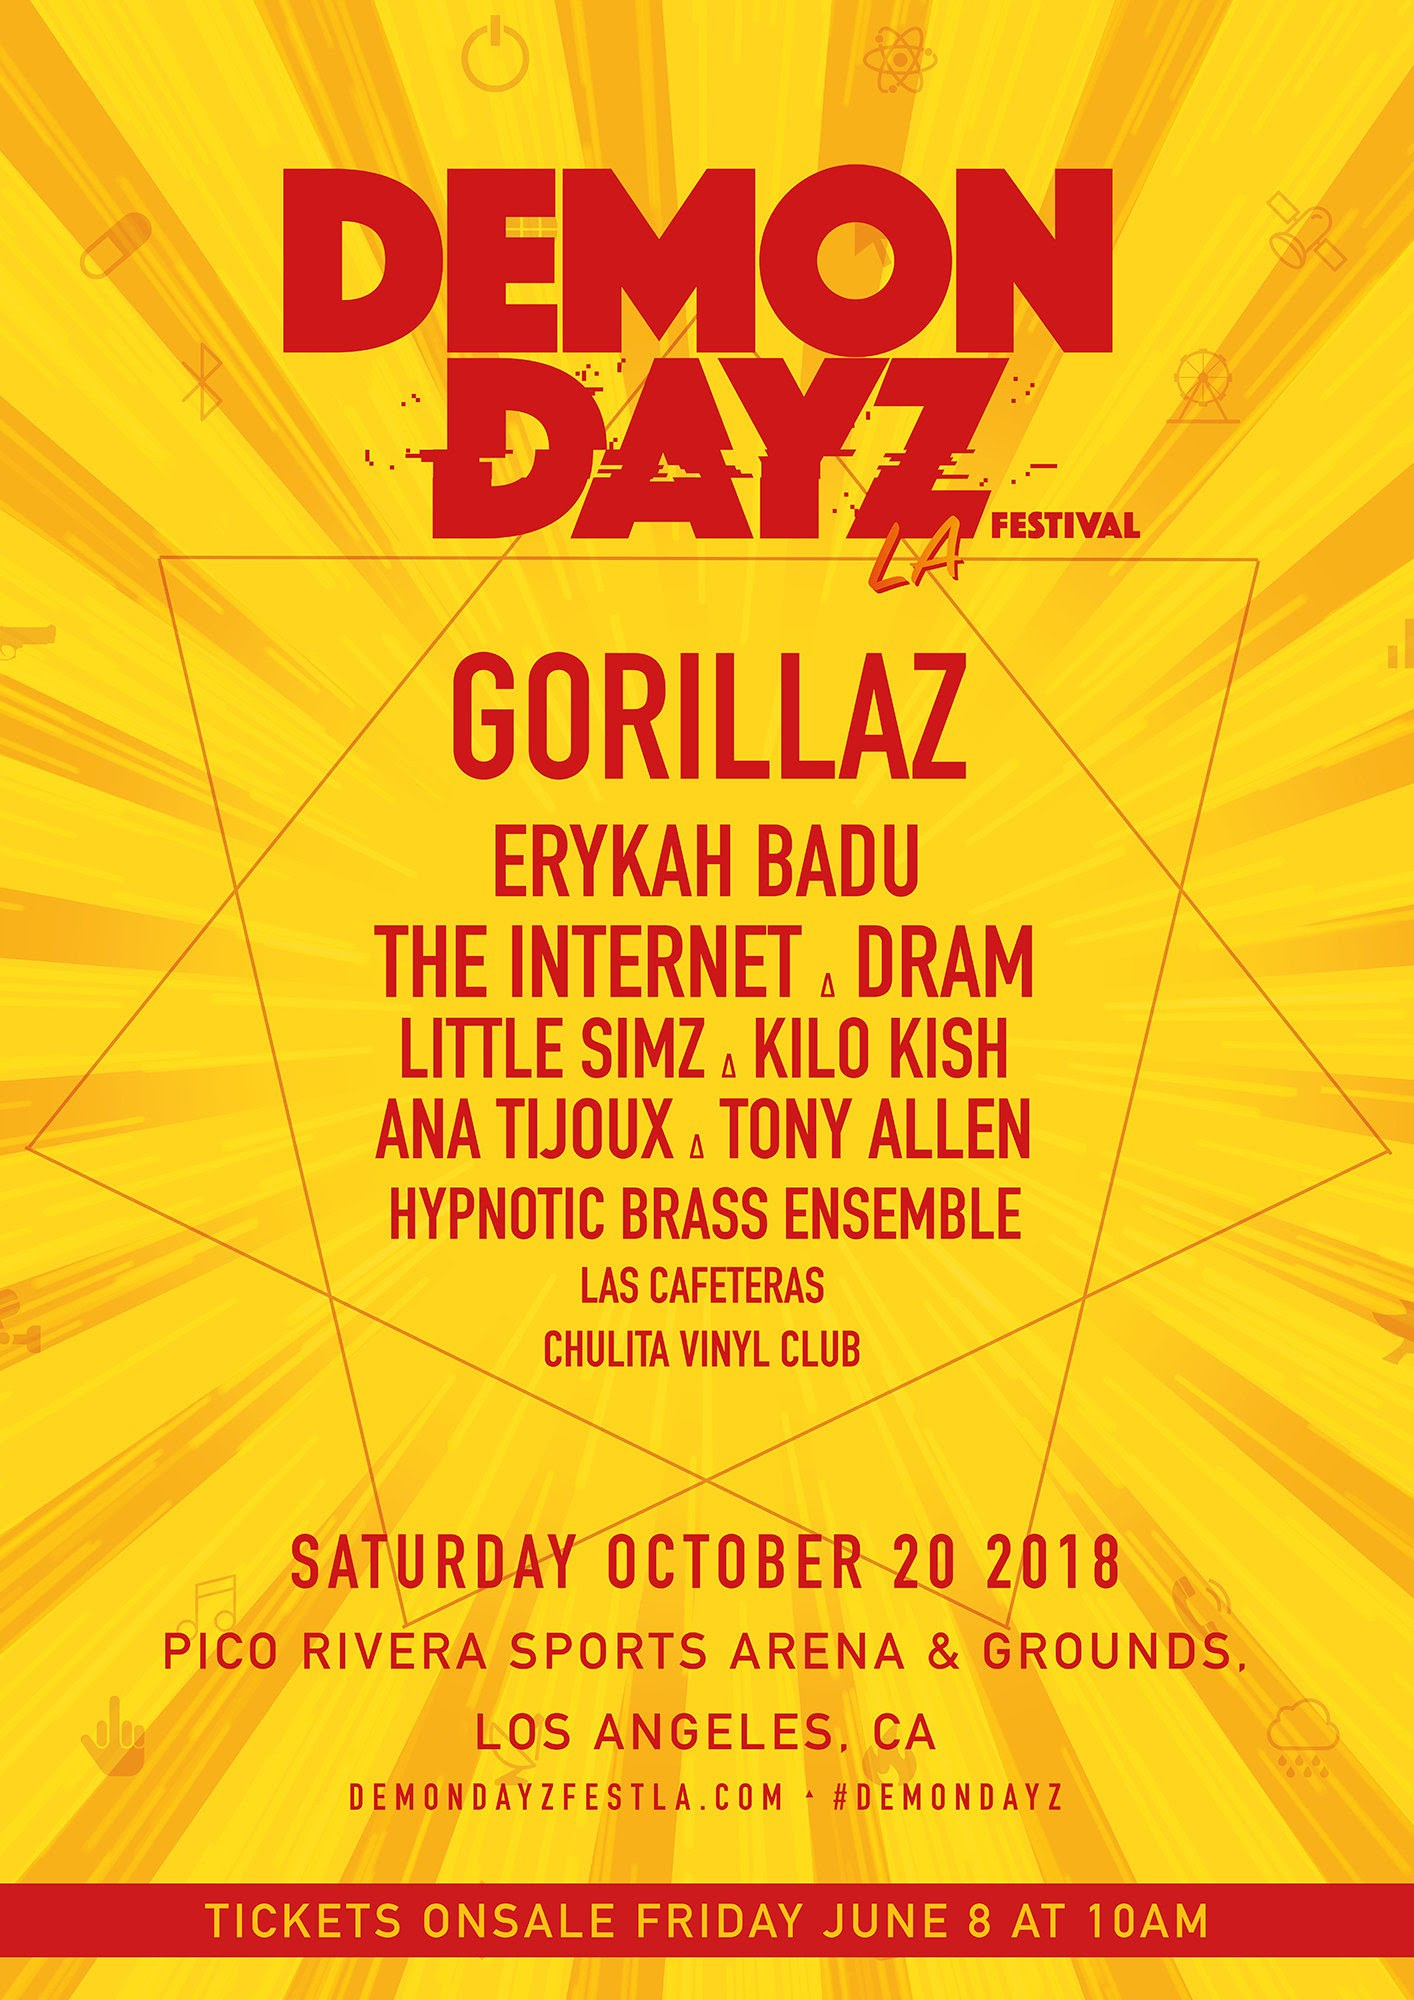 DEMON DAYZ FESTIVAL 2018 & NEW TOUR DATES